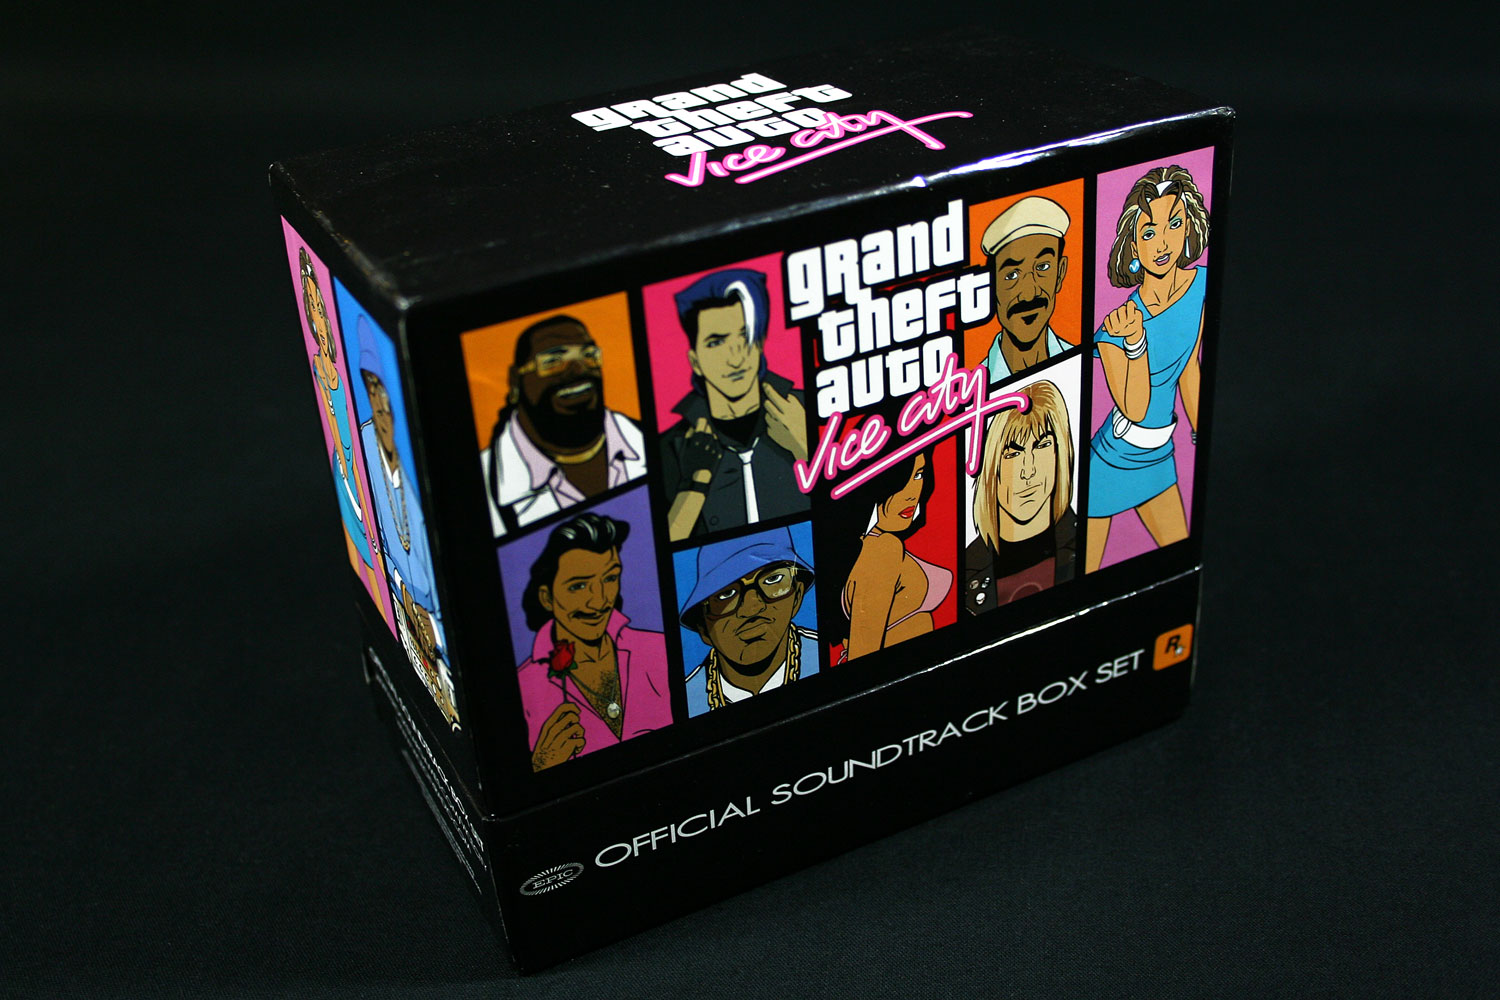 GTA Vice City Soundtrack (Official CD Box Set)